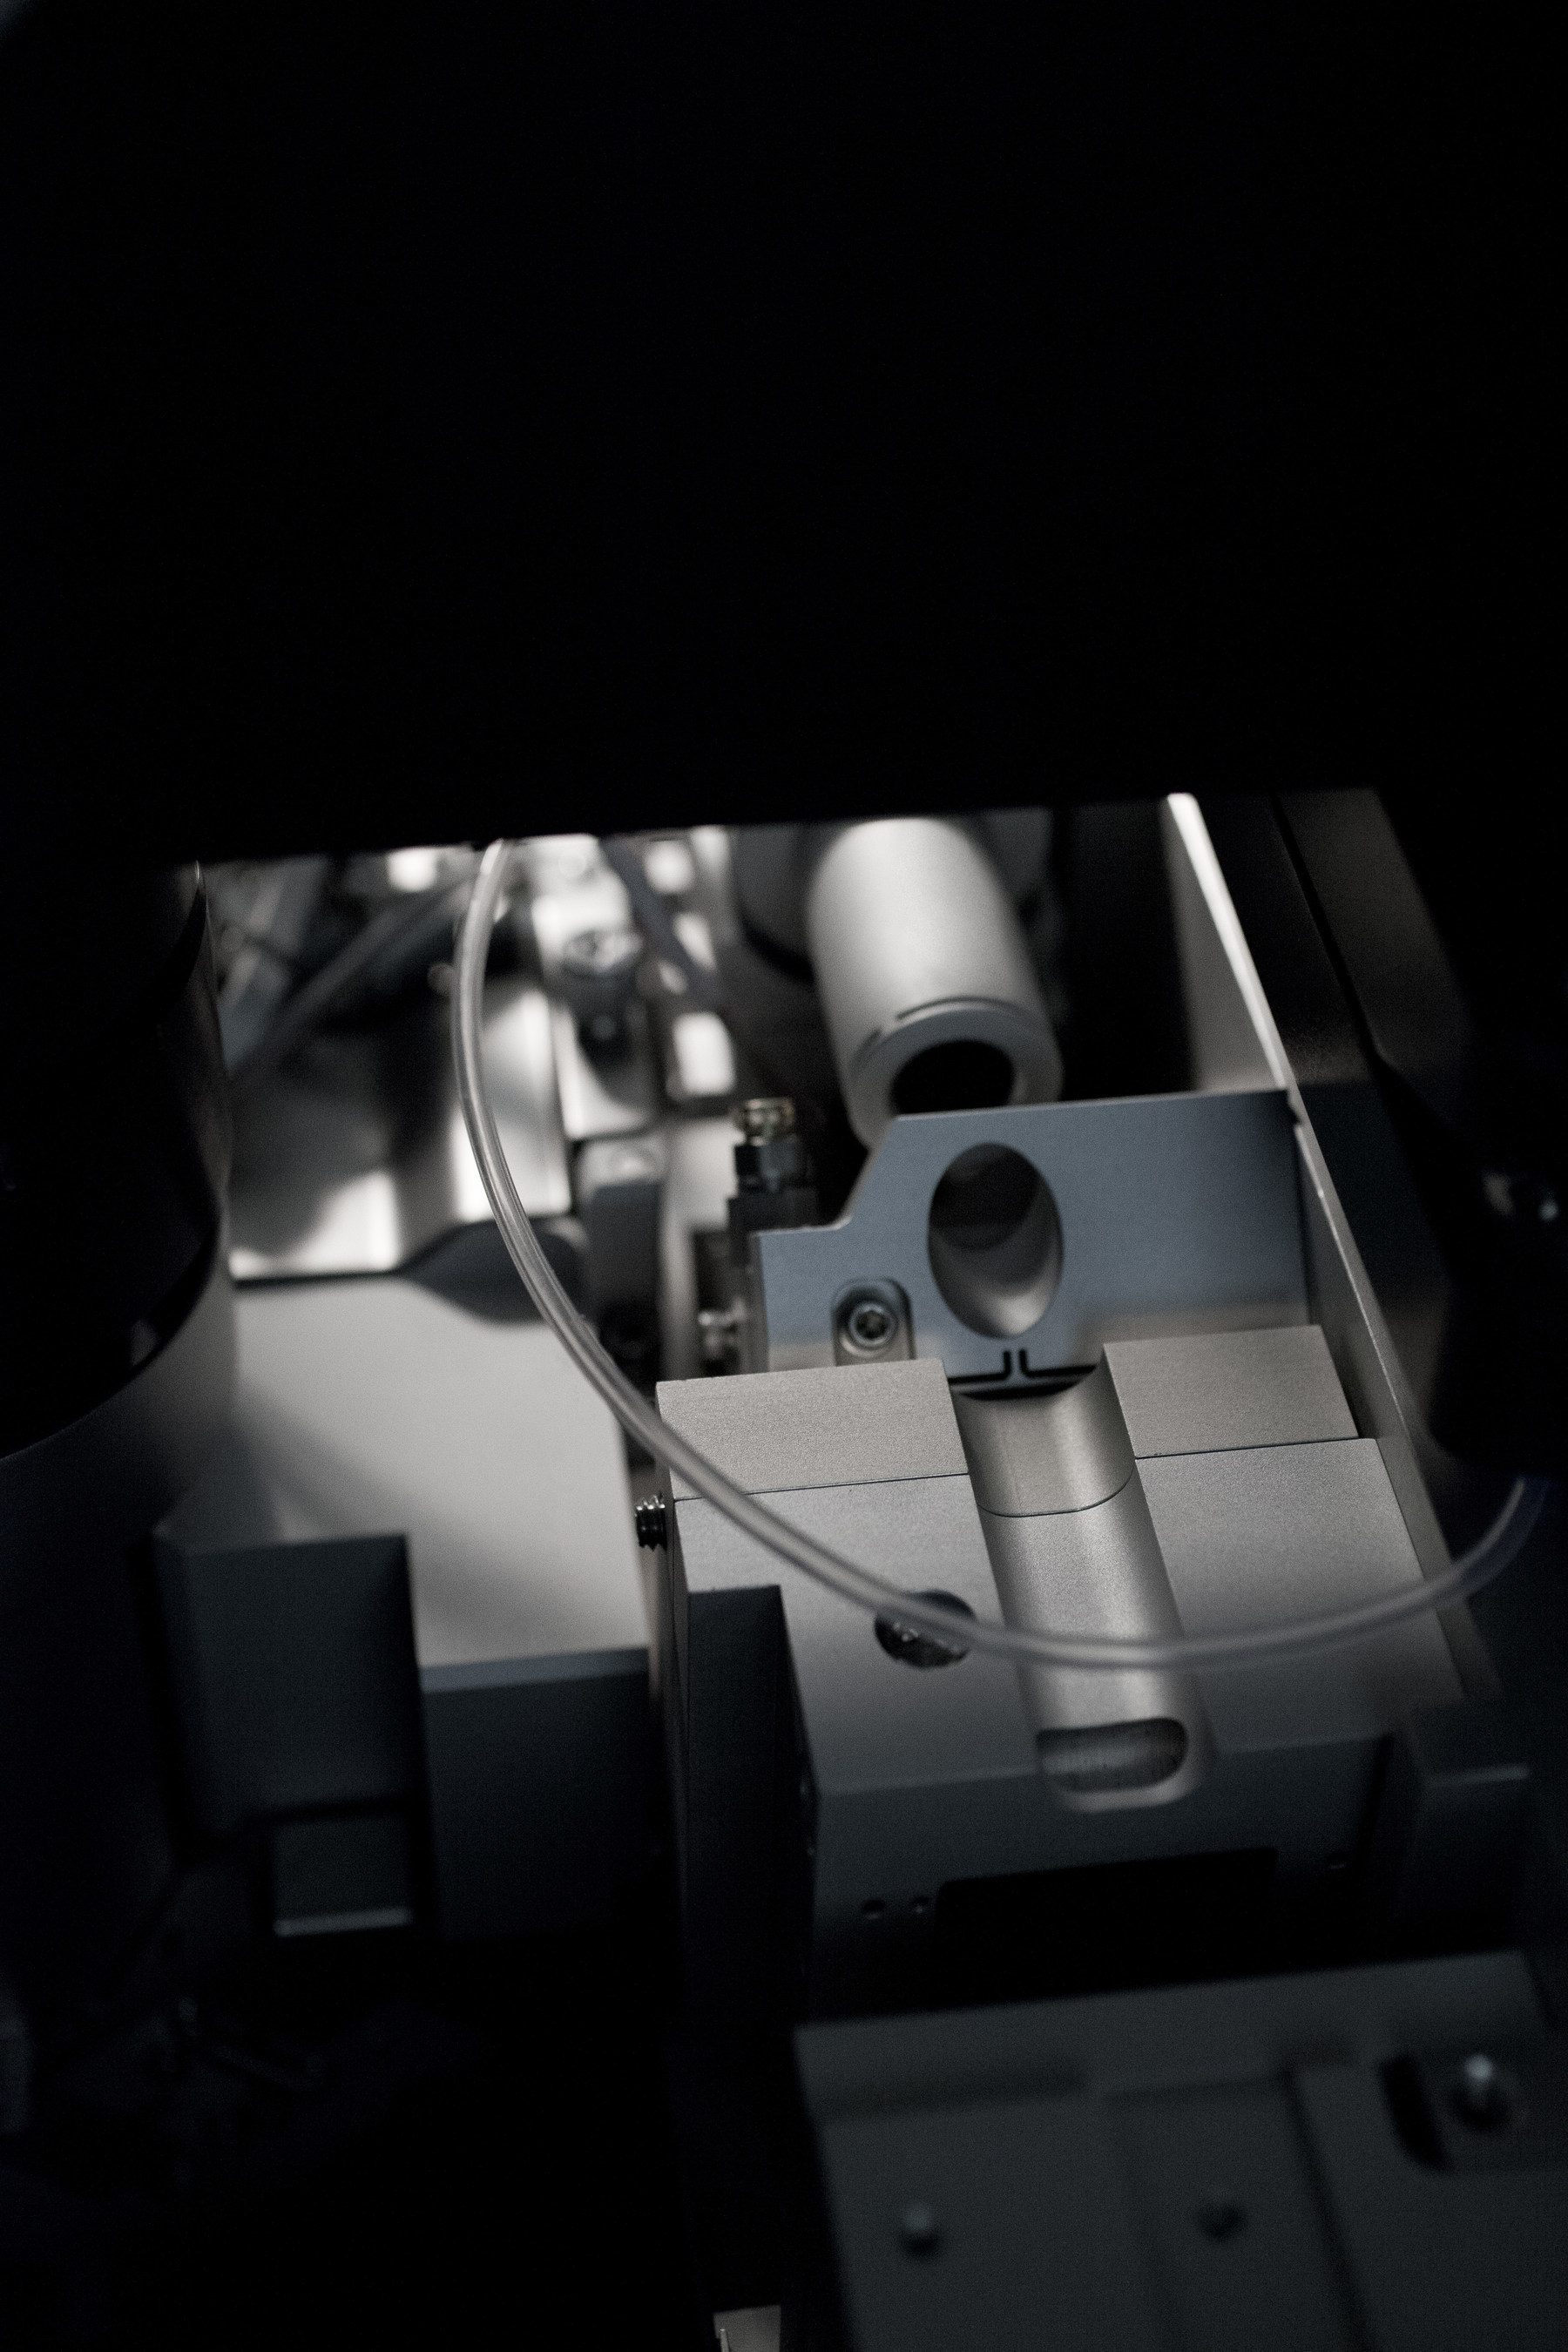 Puma 9980: laser scanning patterned wafer defect inspector with diverse defect type capture for high throughput production ramp monitoring across a wide range of applications